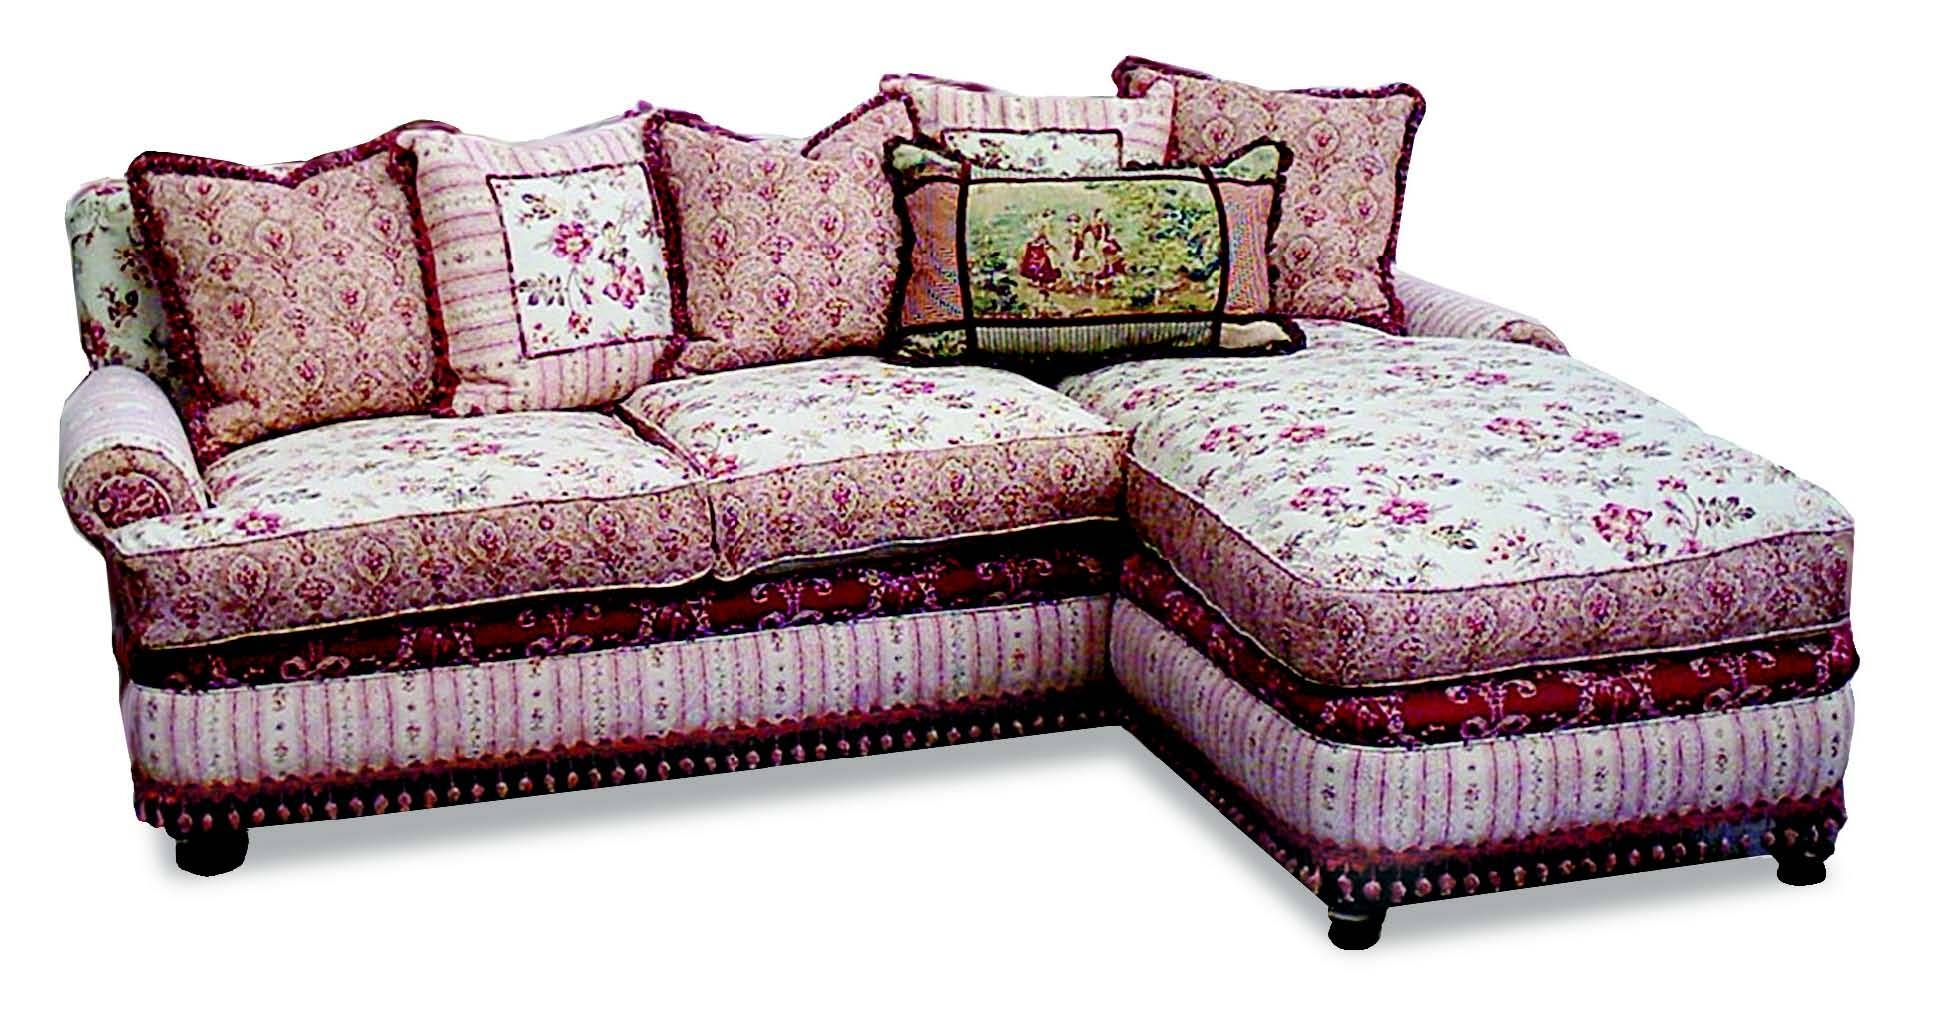 Furniture Home: Amusing Shabby Chic Sectional Sofa 16 For Your Inside Shabby Chic Sectional Sofas Couches (View 7 of 15)